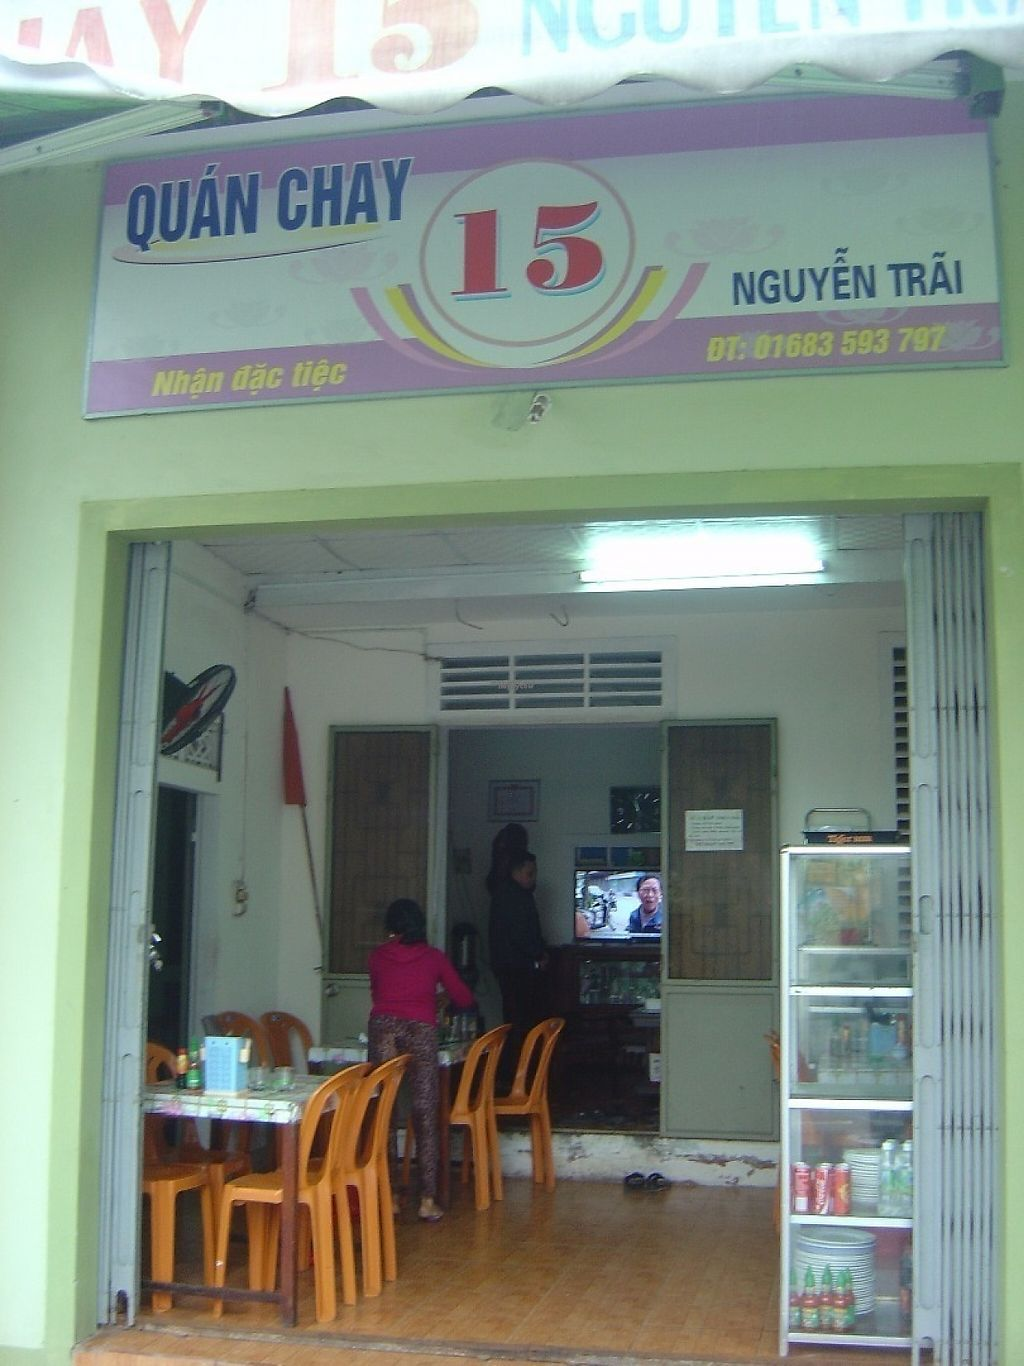 """Photo of Quan Chay 15  by <a href=""""/members/profile/mfalgas"""">mfalgas</a> <br/>Small restaurant as seen from outside <br/> January 5, 2017  - <a href='/contact/abuse/image/84890/208307'>Report</a>"""